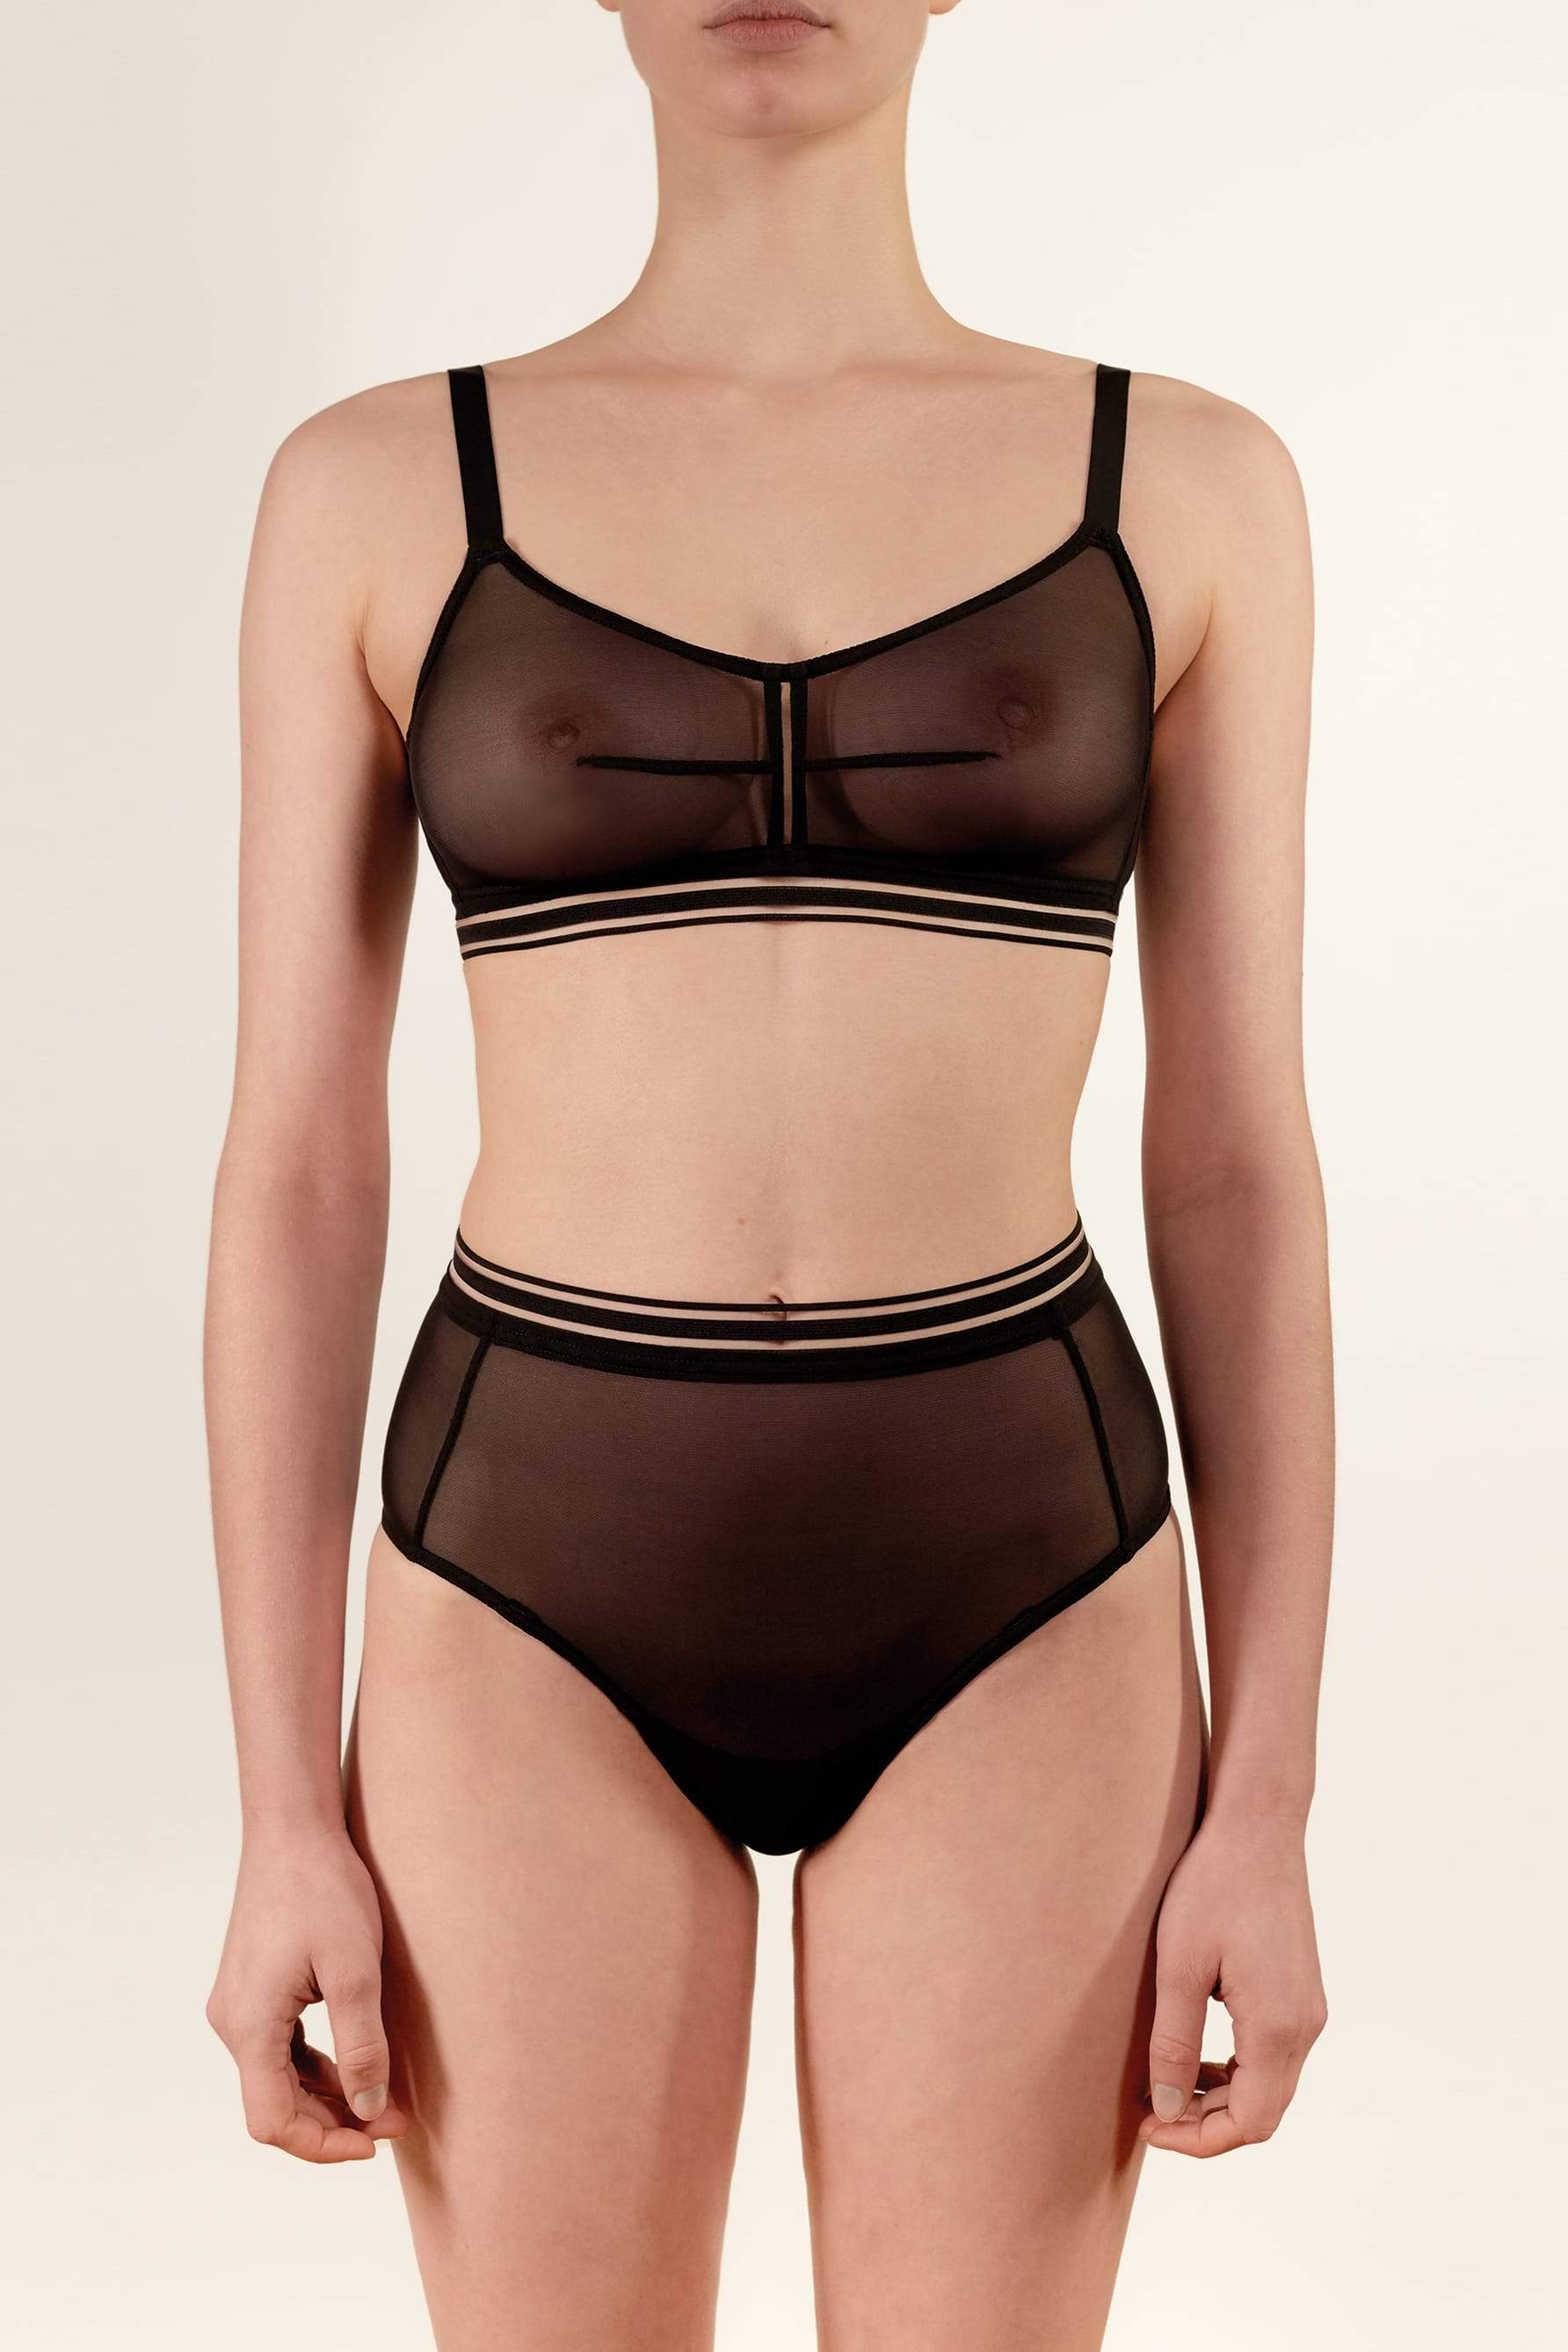 Opaak Paloma high waist brief in sheer black mesh, front view, on model